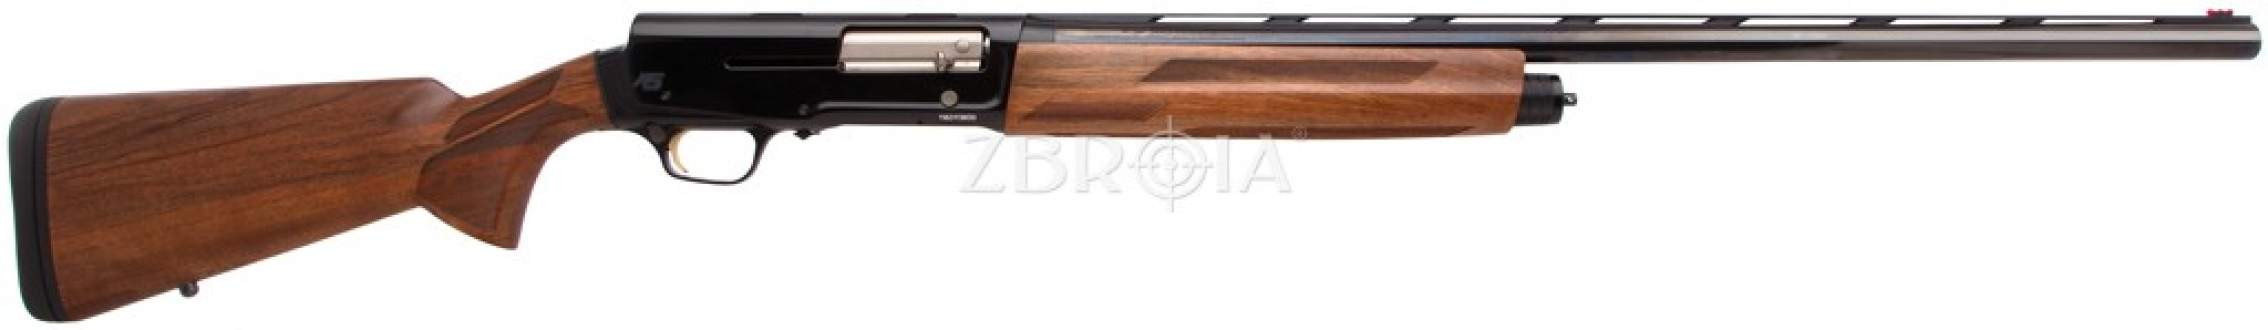 Ружье Browning A5 Standard кал. 12/76